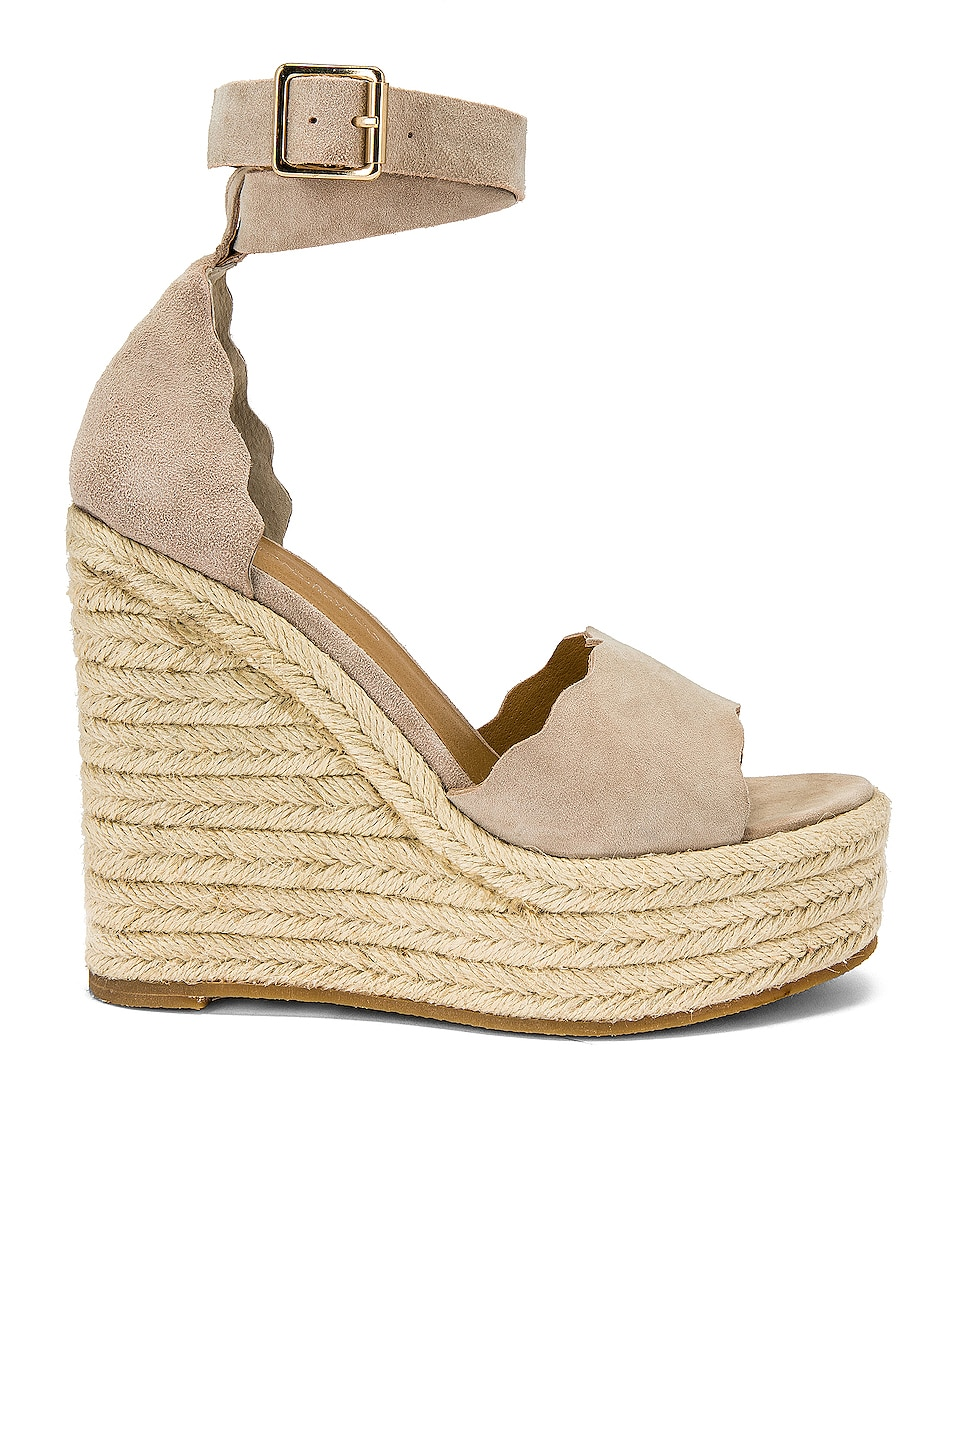 Tony Bianco Brandi Wedge in Ochre Kid Suede